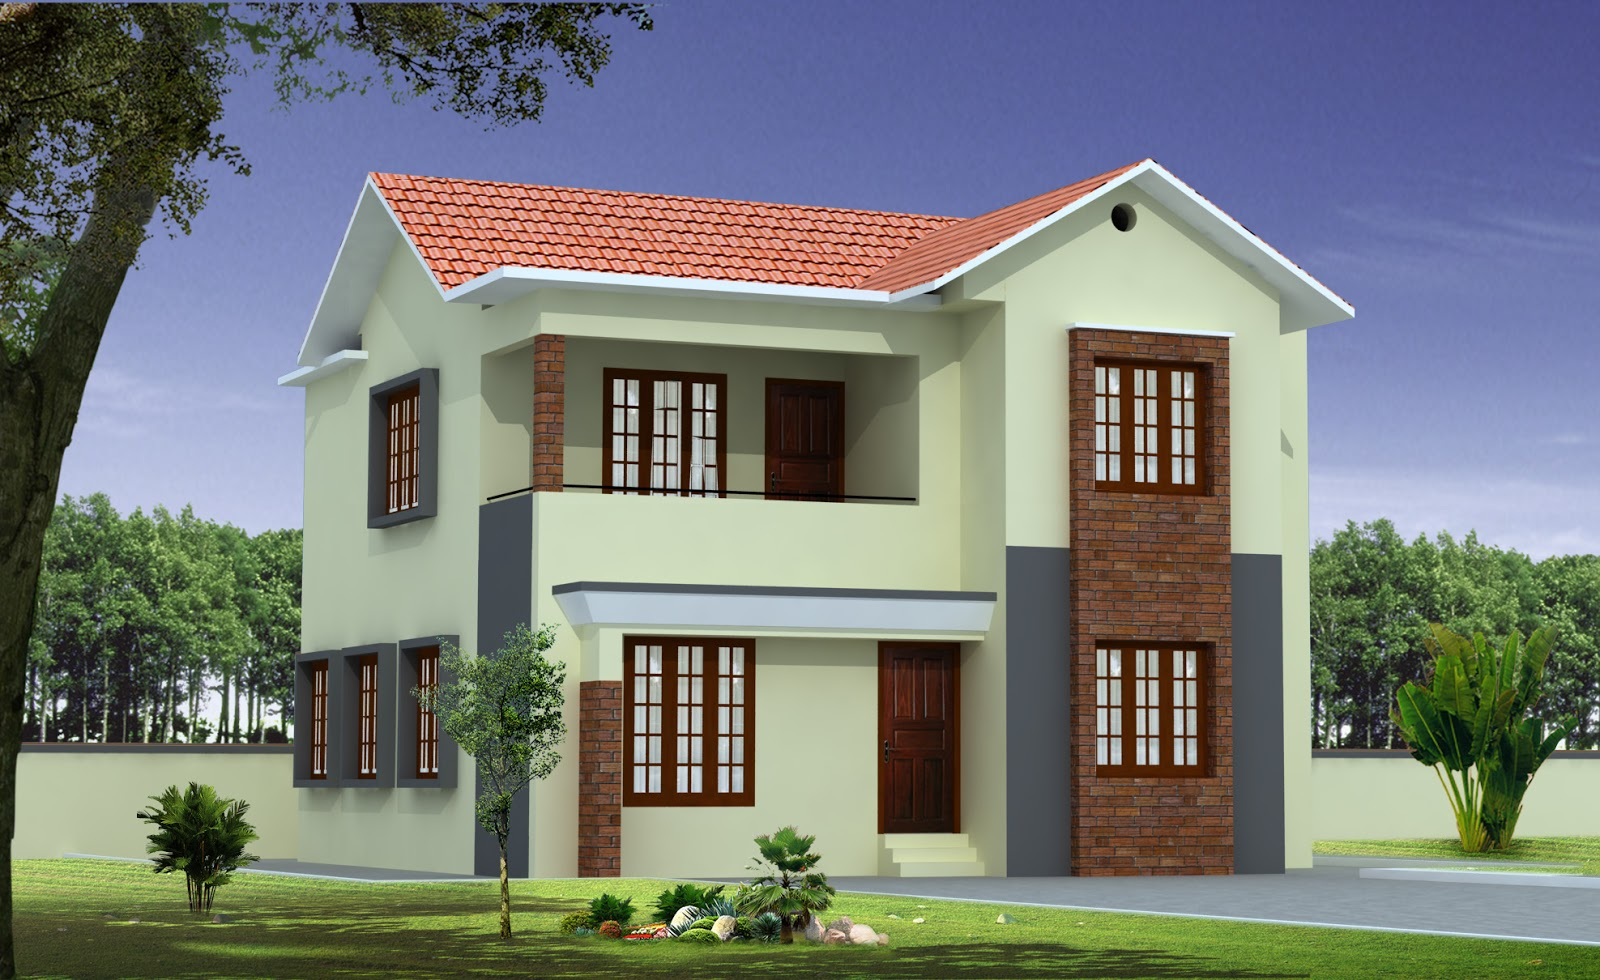 Build a building latest home designs for Home building design